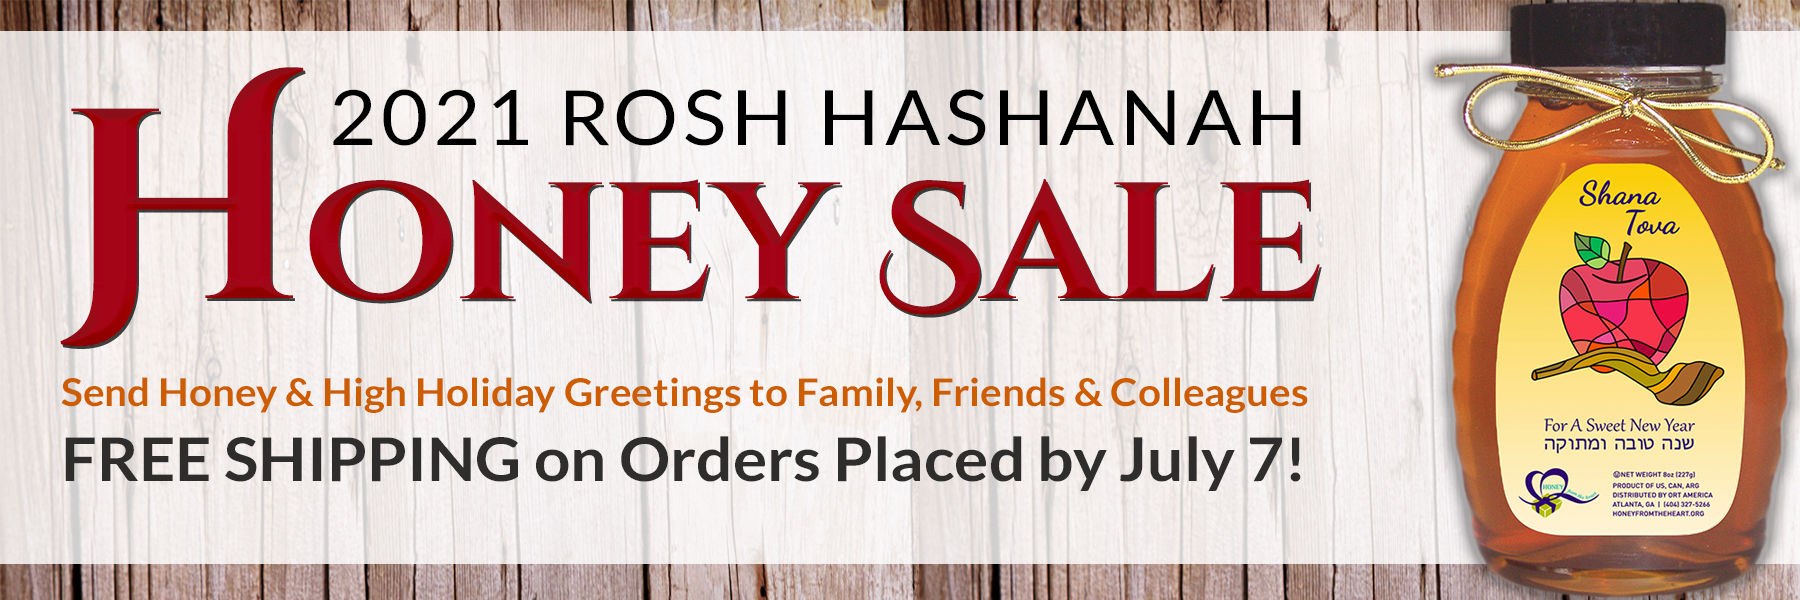 """<a href=""""https://www.barnerttemple.org/honeysale""""                                     target=""""_blank"""">                                                                 <span class=""""slider_title"""">                                     Sisterhood Rosh Hashanah Honey Sale!                                </span>                                                                 </a>                                                                                                                                                                                       <span class=""""slider_description"""">The High Holidays are VERY early this year.  Let us help make them a bit easier for you.  Order honey from us!  Click above for details.</span>"""